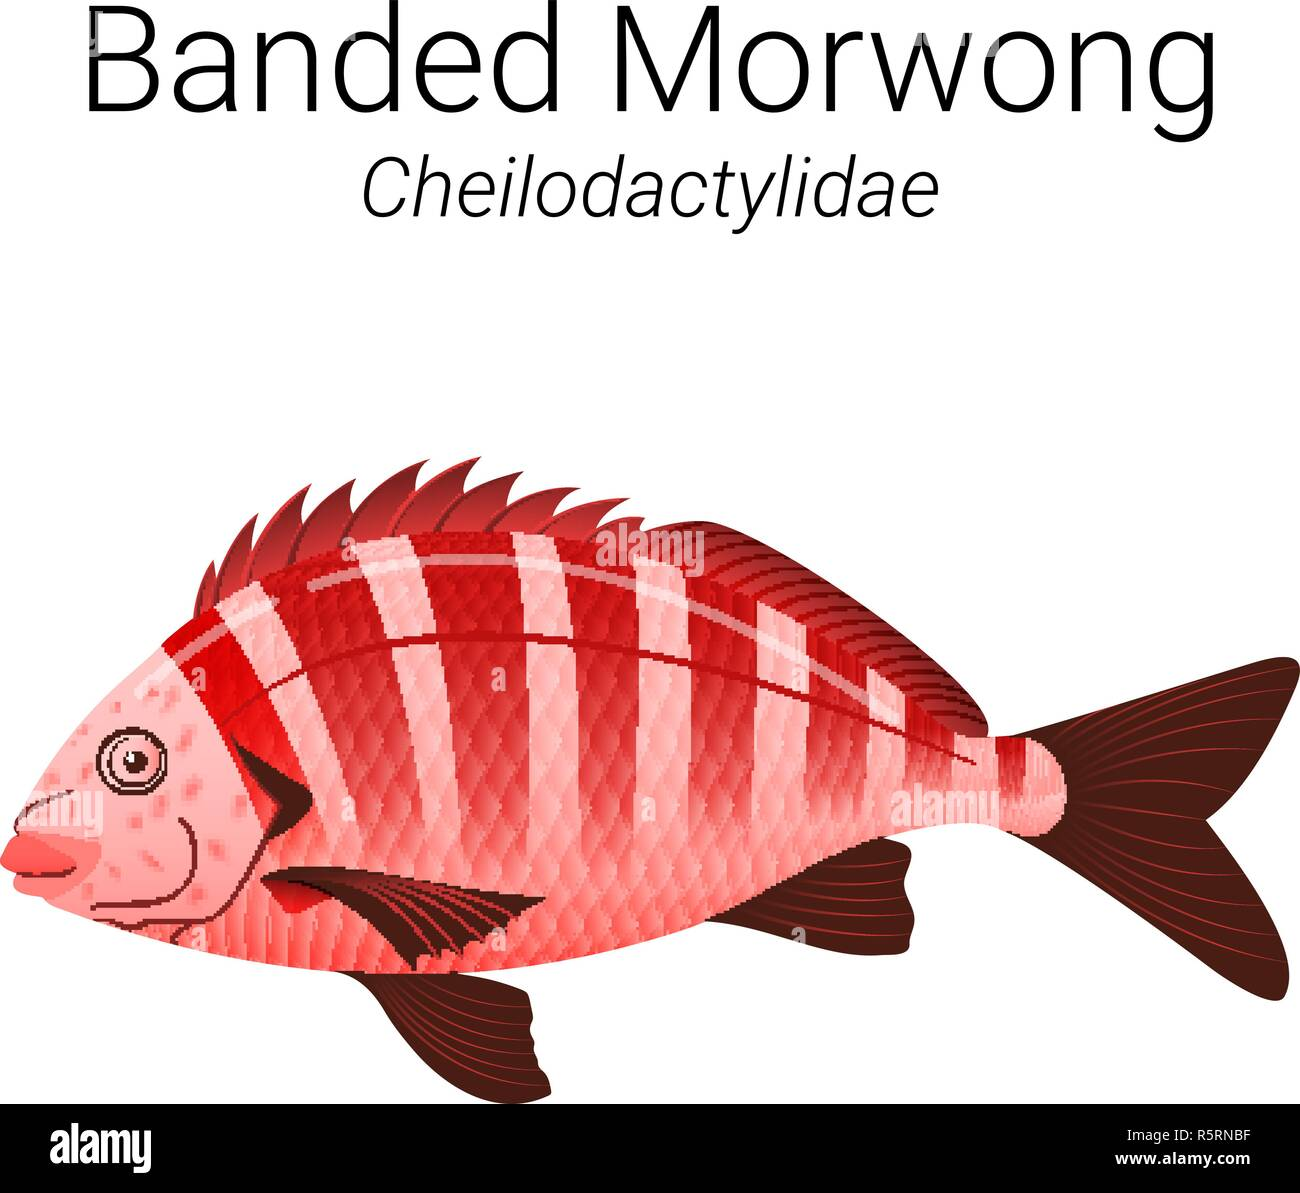 Banded Morwong Stock Photos & Banded Morwong Stock Images